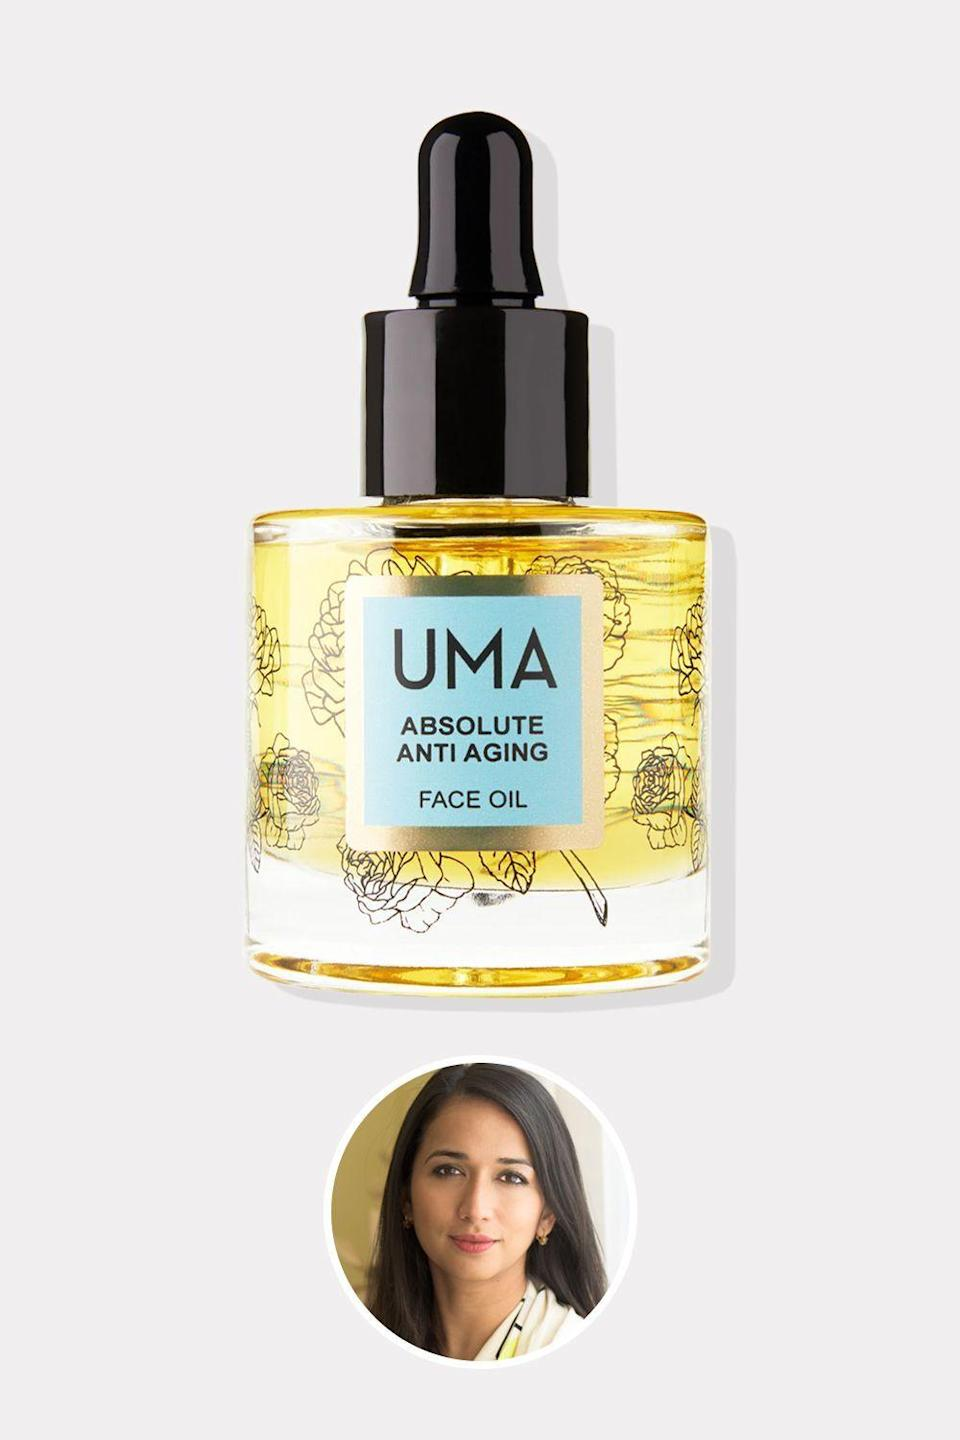 """<p><strong>Uma</strong></p><p>ssense.com</p><p><strong>$128.00</strong></p><p><a href=""""https://go.redirectingat.com?id=74968X1596630&url=https%3A%2F%2Fwww.ssense.com%2Fen-us%2Feverything-else%2Fproduct%2Fuma%2Fabsolute-anti-aging-face-oil-1-oz%2F6665401&sref=https%3A%2F%2Fwww.oprahdaily.com%2Fbeauty%2Fskin-makeup%2Fg36454382%2Fasian-beauty-brands%2F"""" rel=""""nofollow noopener"""" target=""""_blank"""" data-ylk=""""slk:Shop Now"""" class=""""link rapid-noclick-resp"""">Shop Now</a></p><p>After moving to Beverly Hills from India, Uma founder Shrankhla Holecek became determined to reclaim the traditional Ayurvedic practices that she felt had been misappropriated. Holecek uses only the best, infusing Uma's formulas with precious botanical extracts from the brand's own 100-acre farm. The result: Products like this incredibly luxurious face oil. A base of nutrient-rich pomegranate oil plays host to frankinsense, sandalwood, and juniper berry oils to reduce the visible signs of aging and lock in hydration. </p>"""